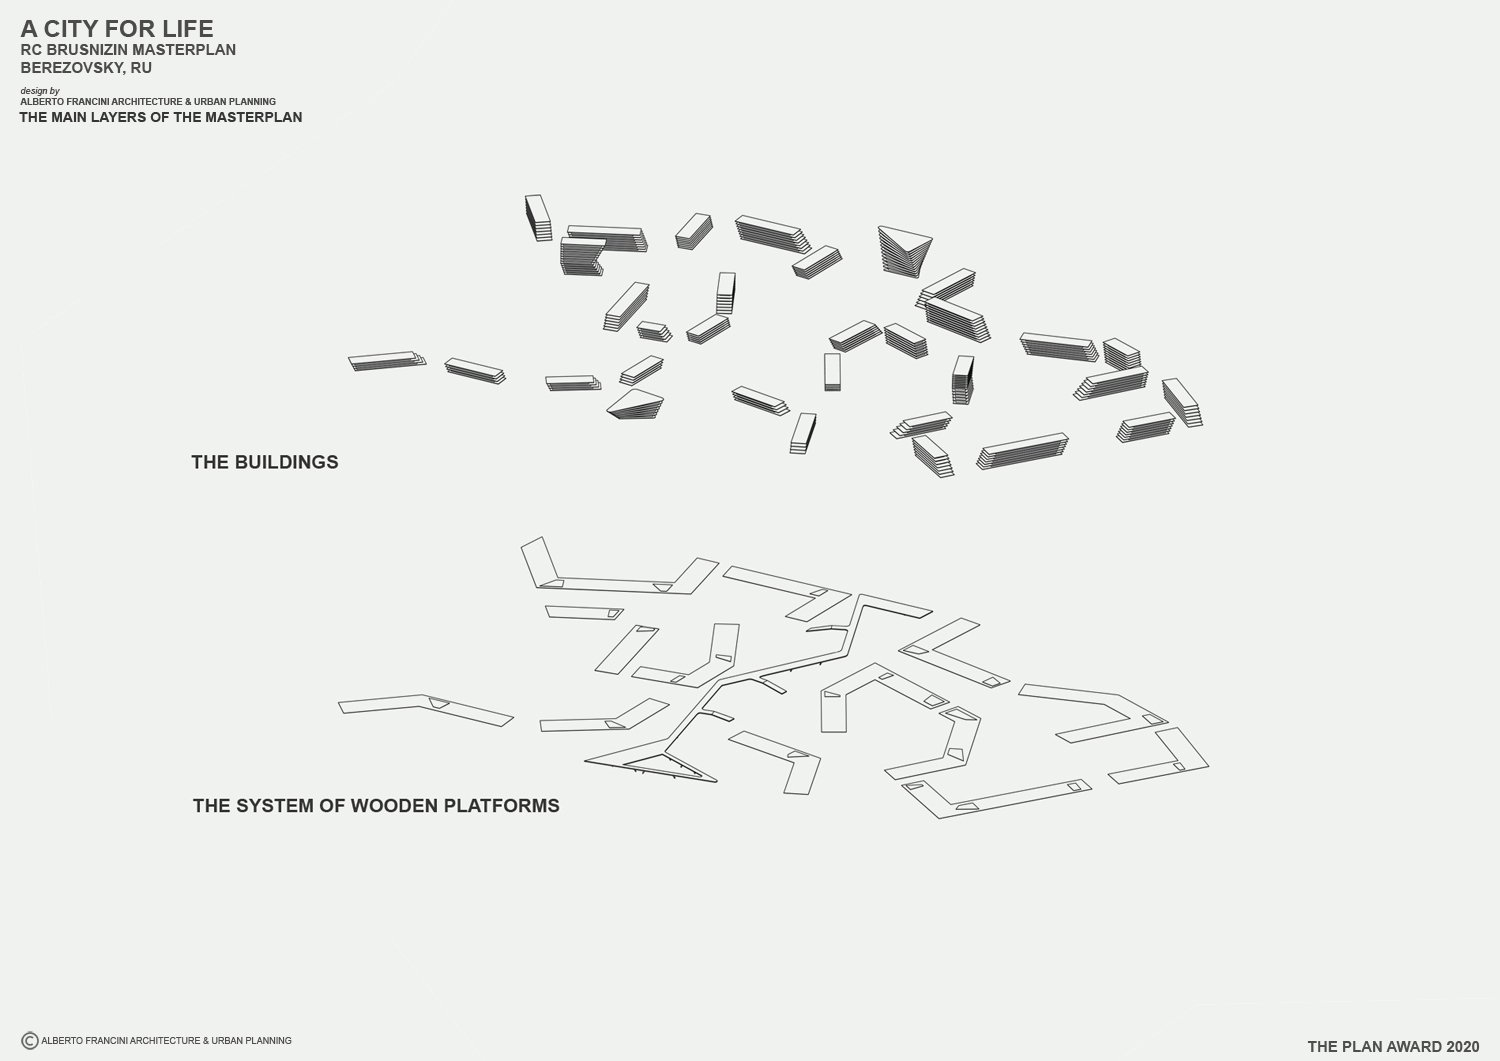 THE MAIN LAYER OF THE MASTERPLAN 3 ALBERTO FRANCINI ARCHITECTURE & URBANPLANNING}